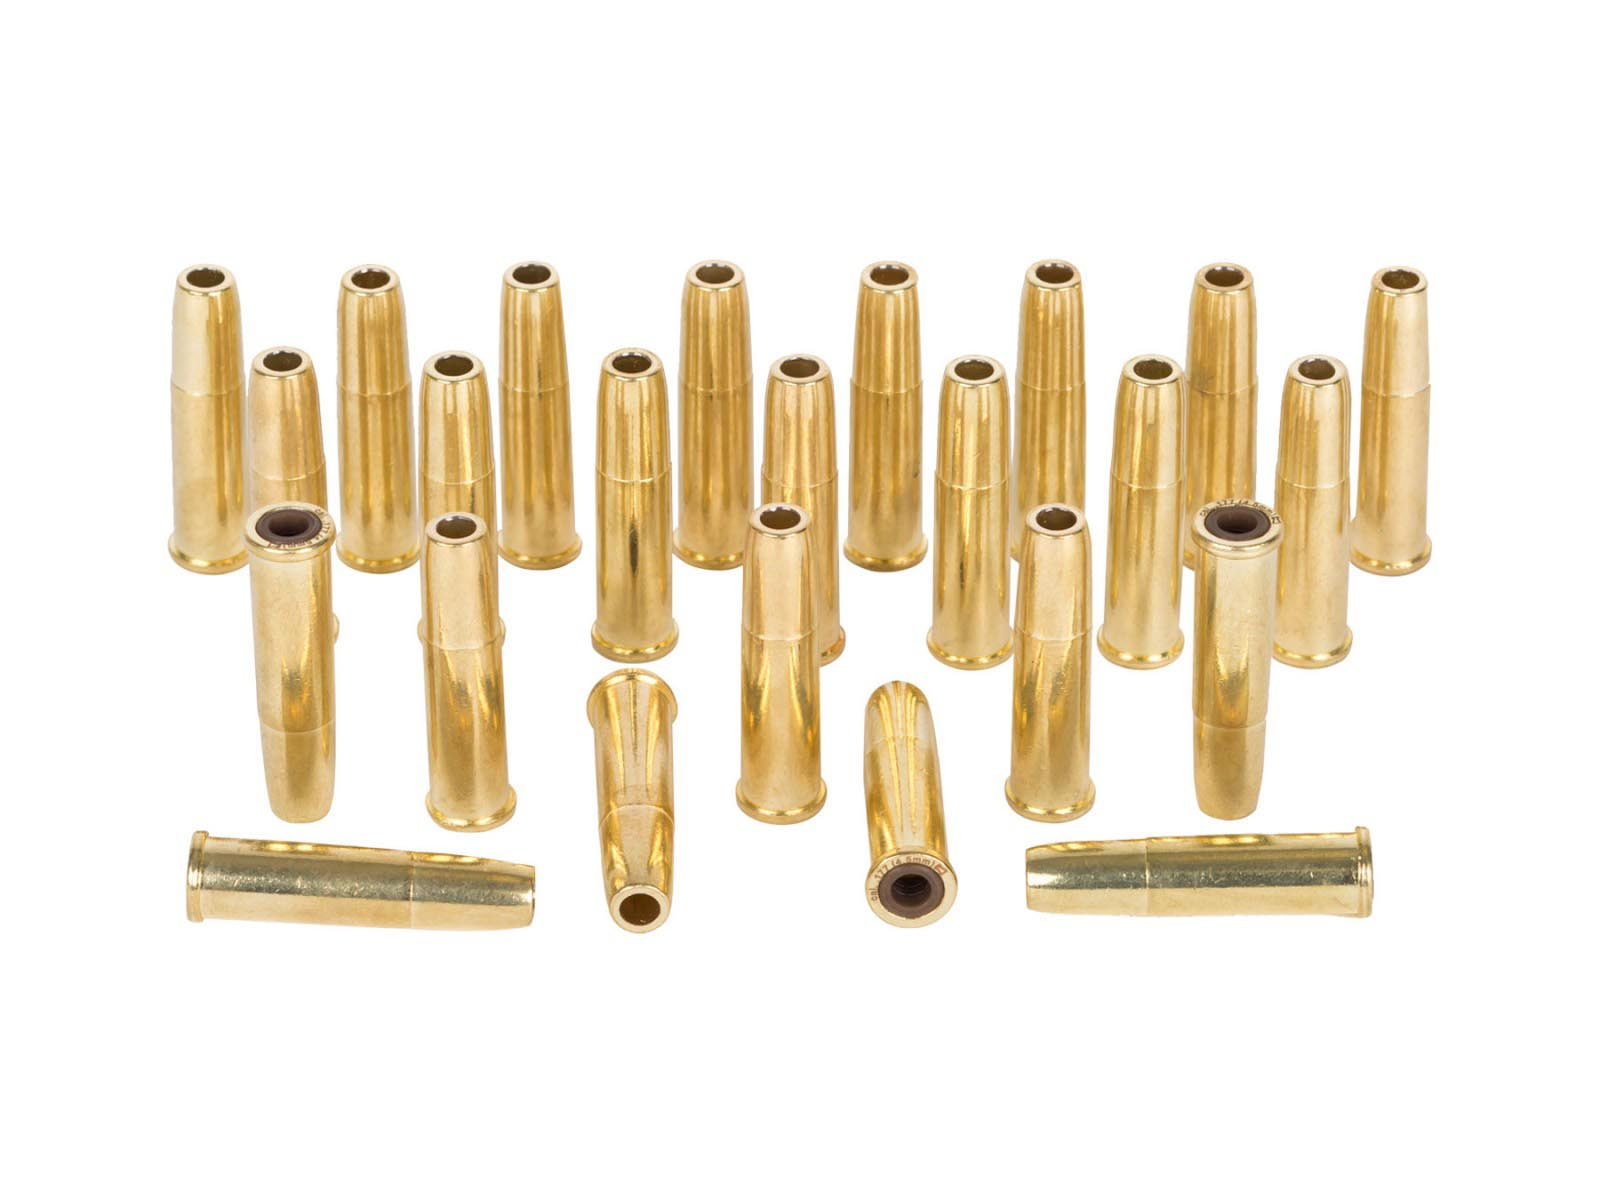 Dan Wesson 715 Pellet Revolver Cartridges